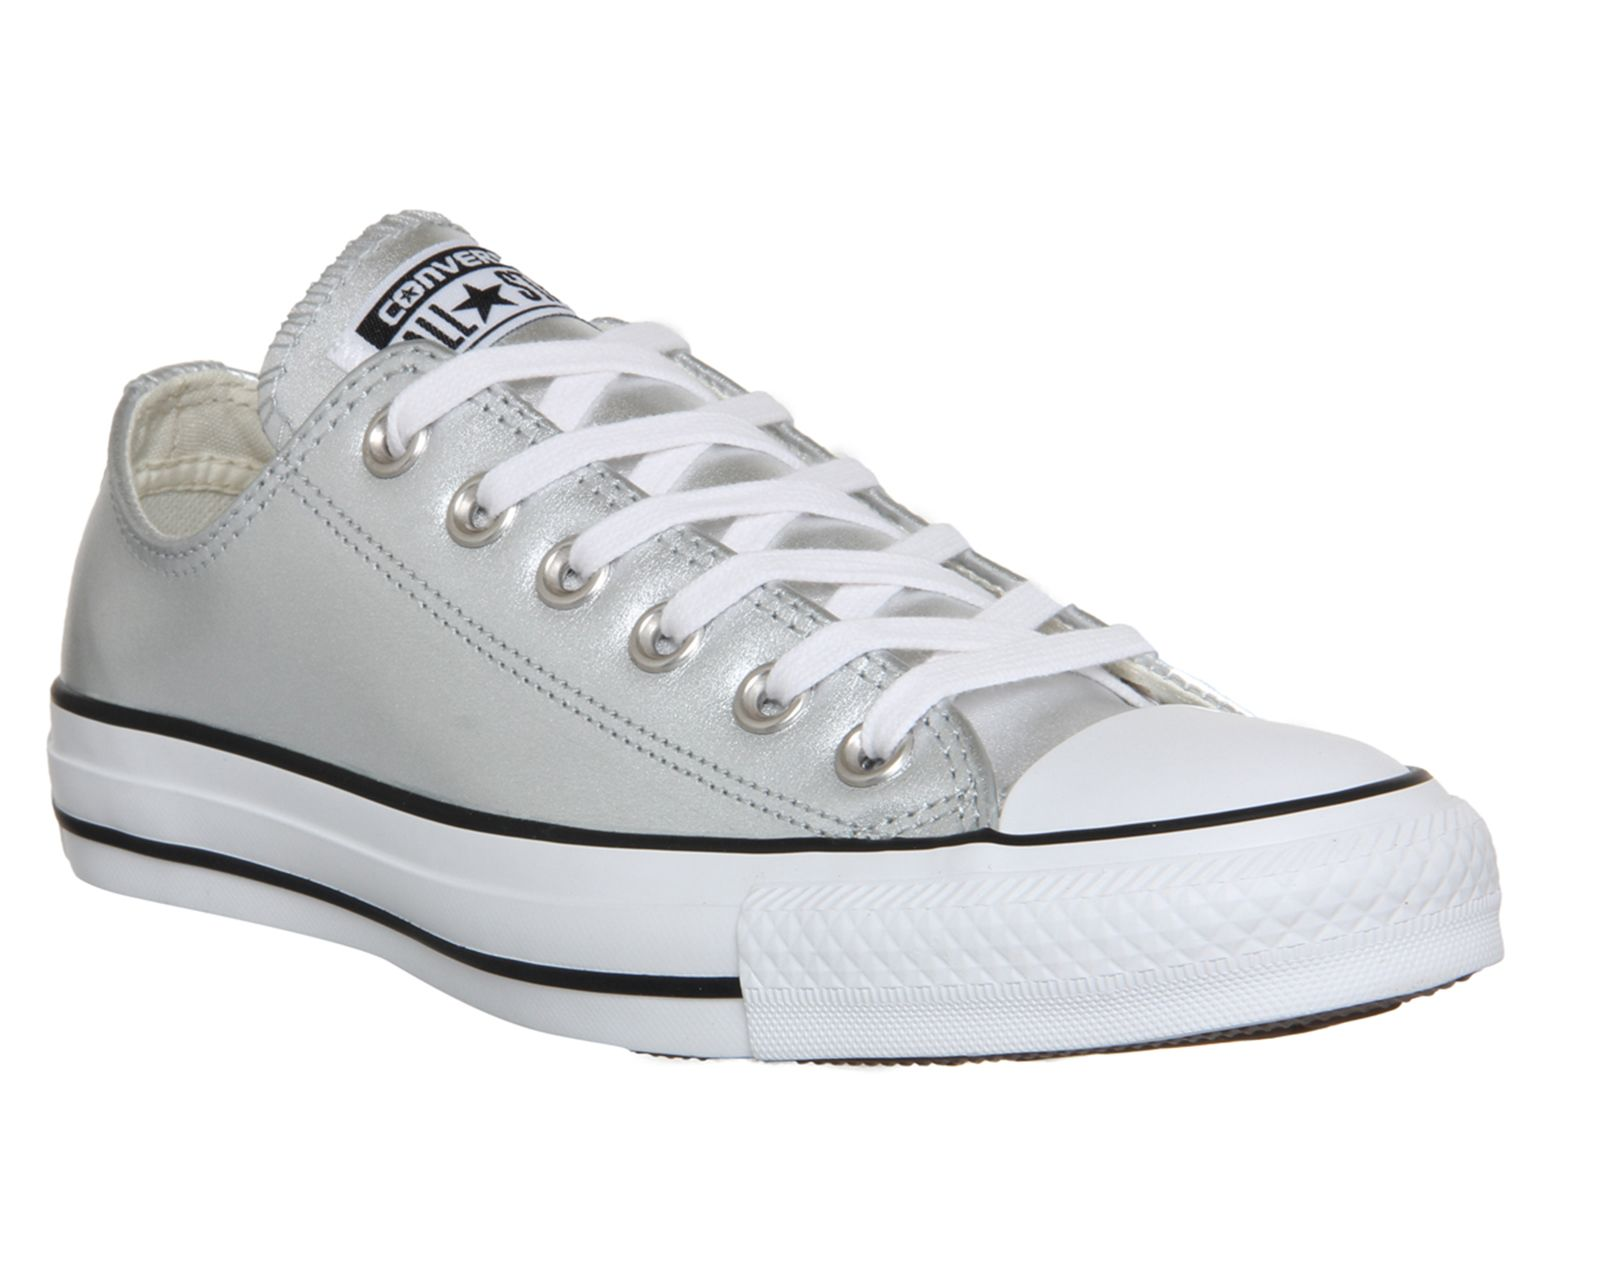 Silver Metallic Converse All Star Low Leather From Office Co Uk